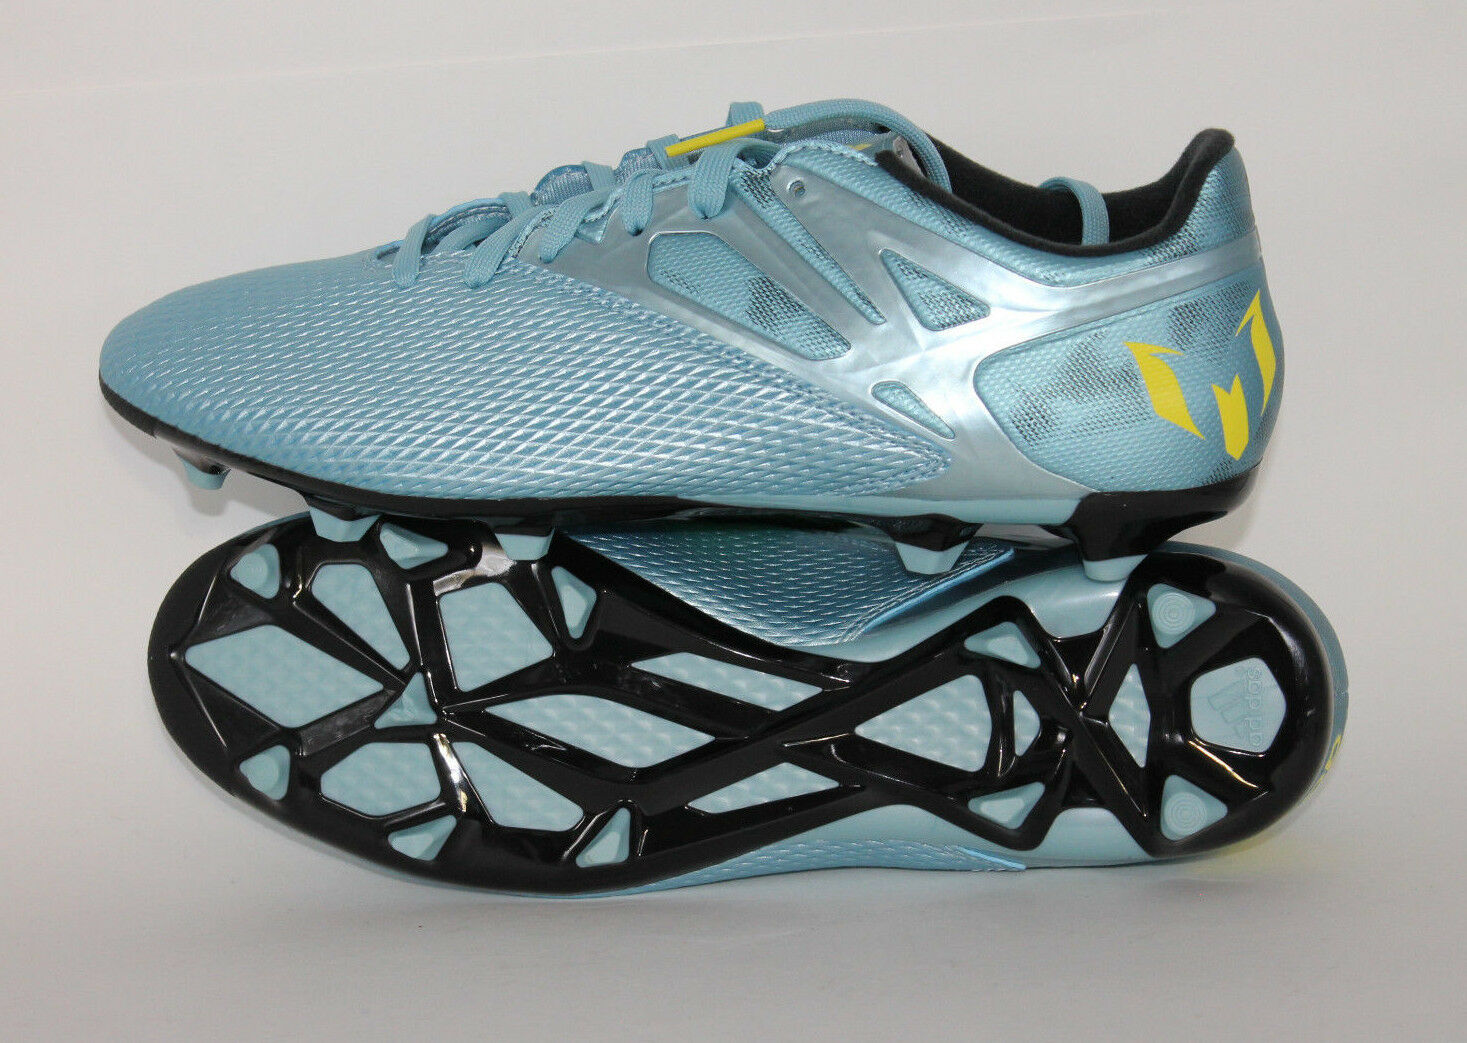 Adidas Men's Messi 15.3 FG AG Low Soccer Cleats